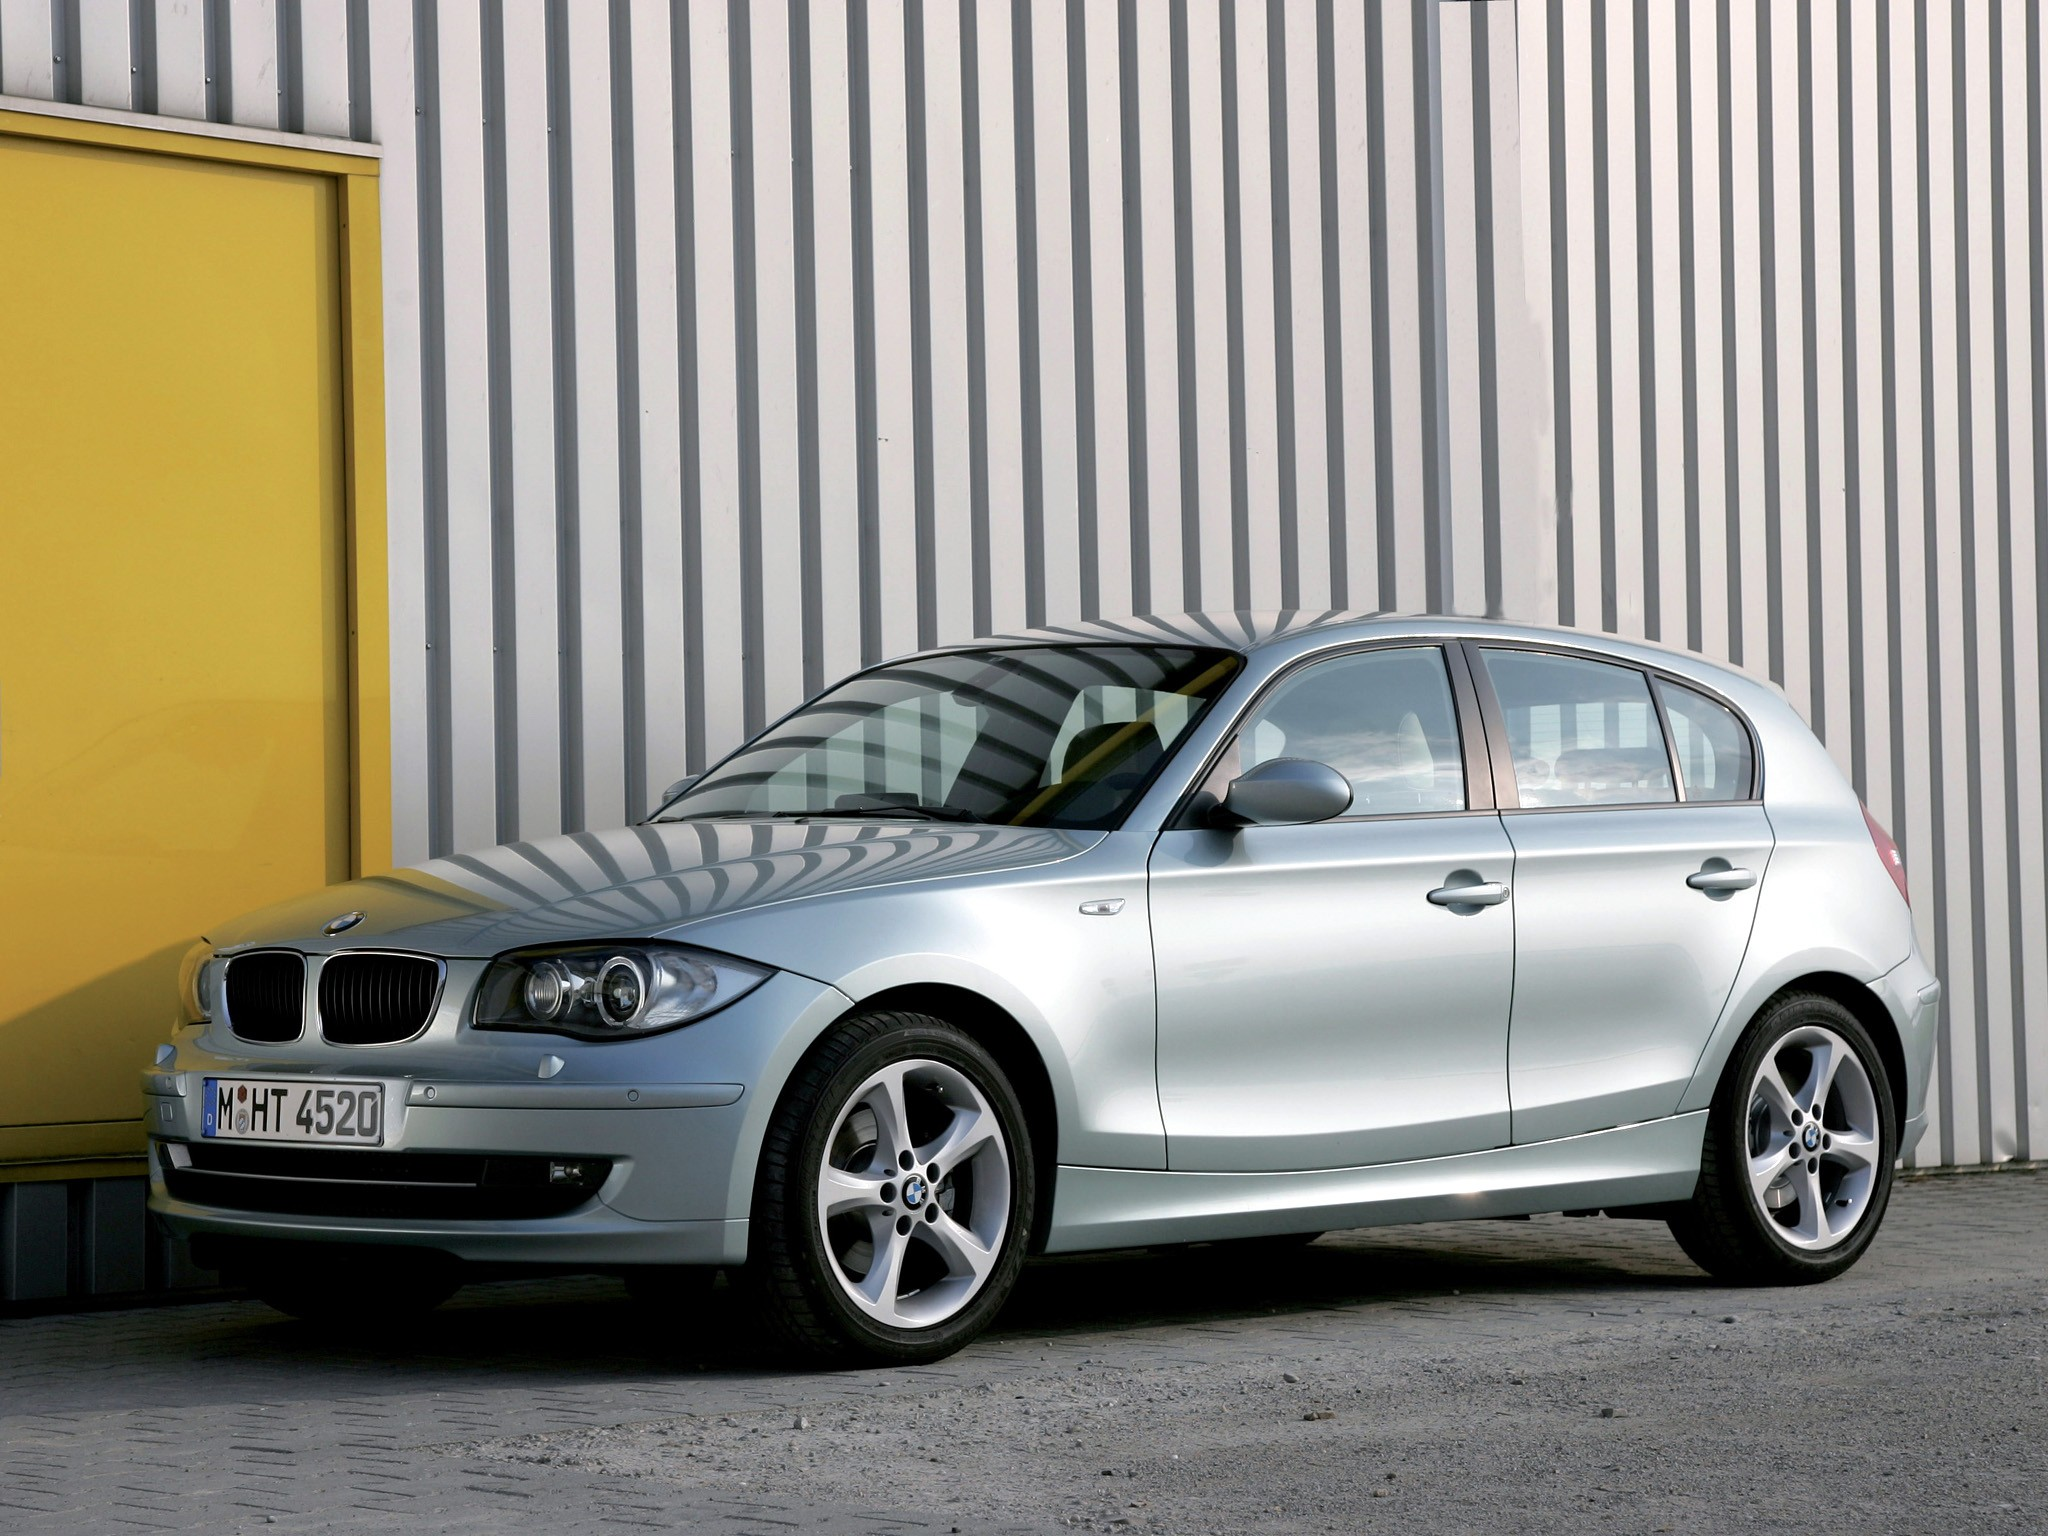 bmw 1 series e87 specs photos 2007 2008 2009 2010 2011 autoevolution. Black Bedroom Furniture Sets. Home Design Ideas